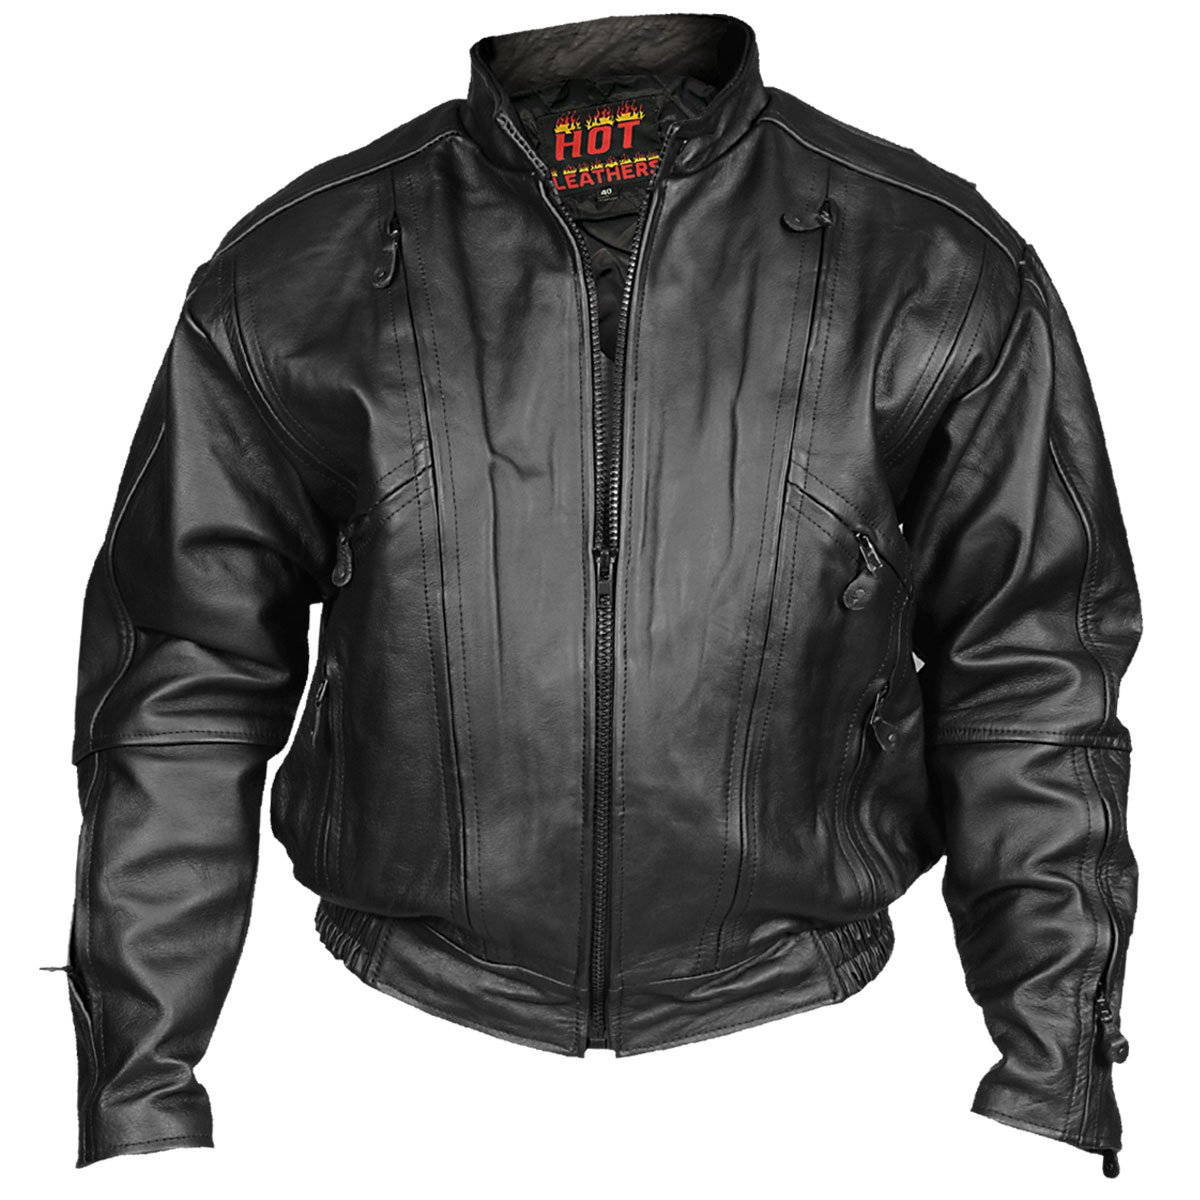 Hot Leathers Men's Vented Motorcycle Jacket